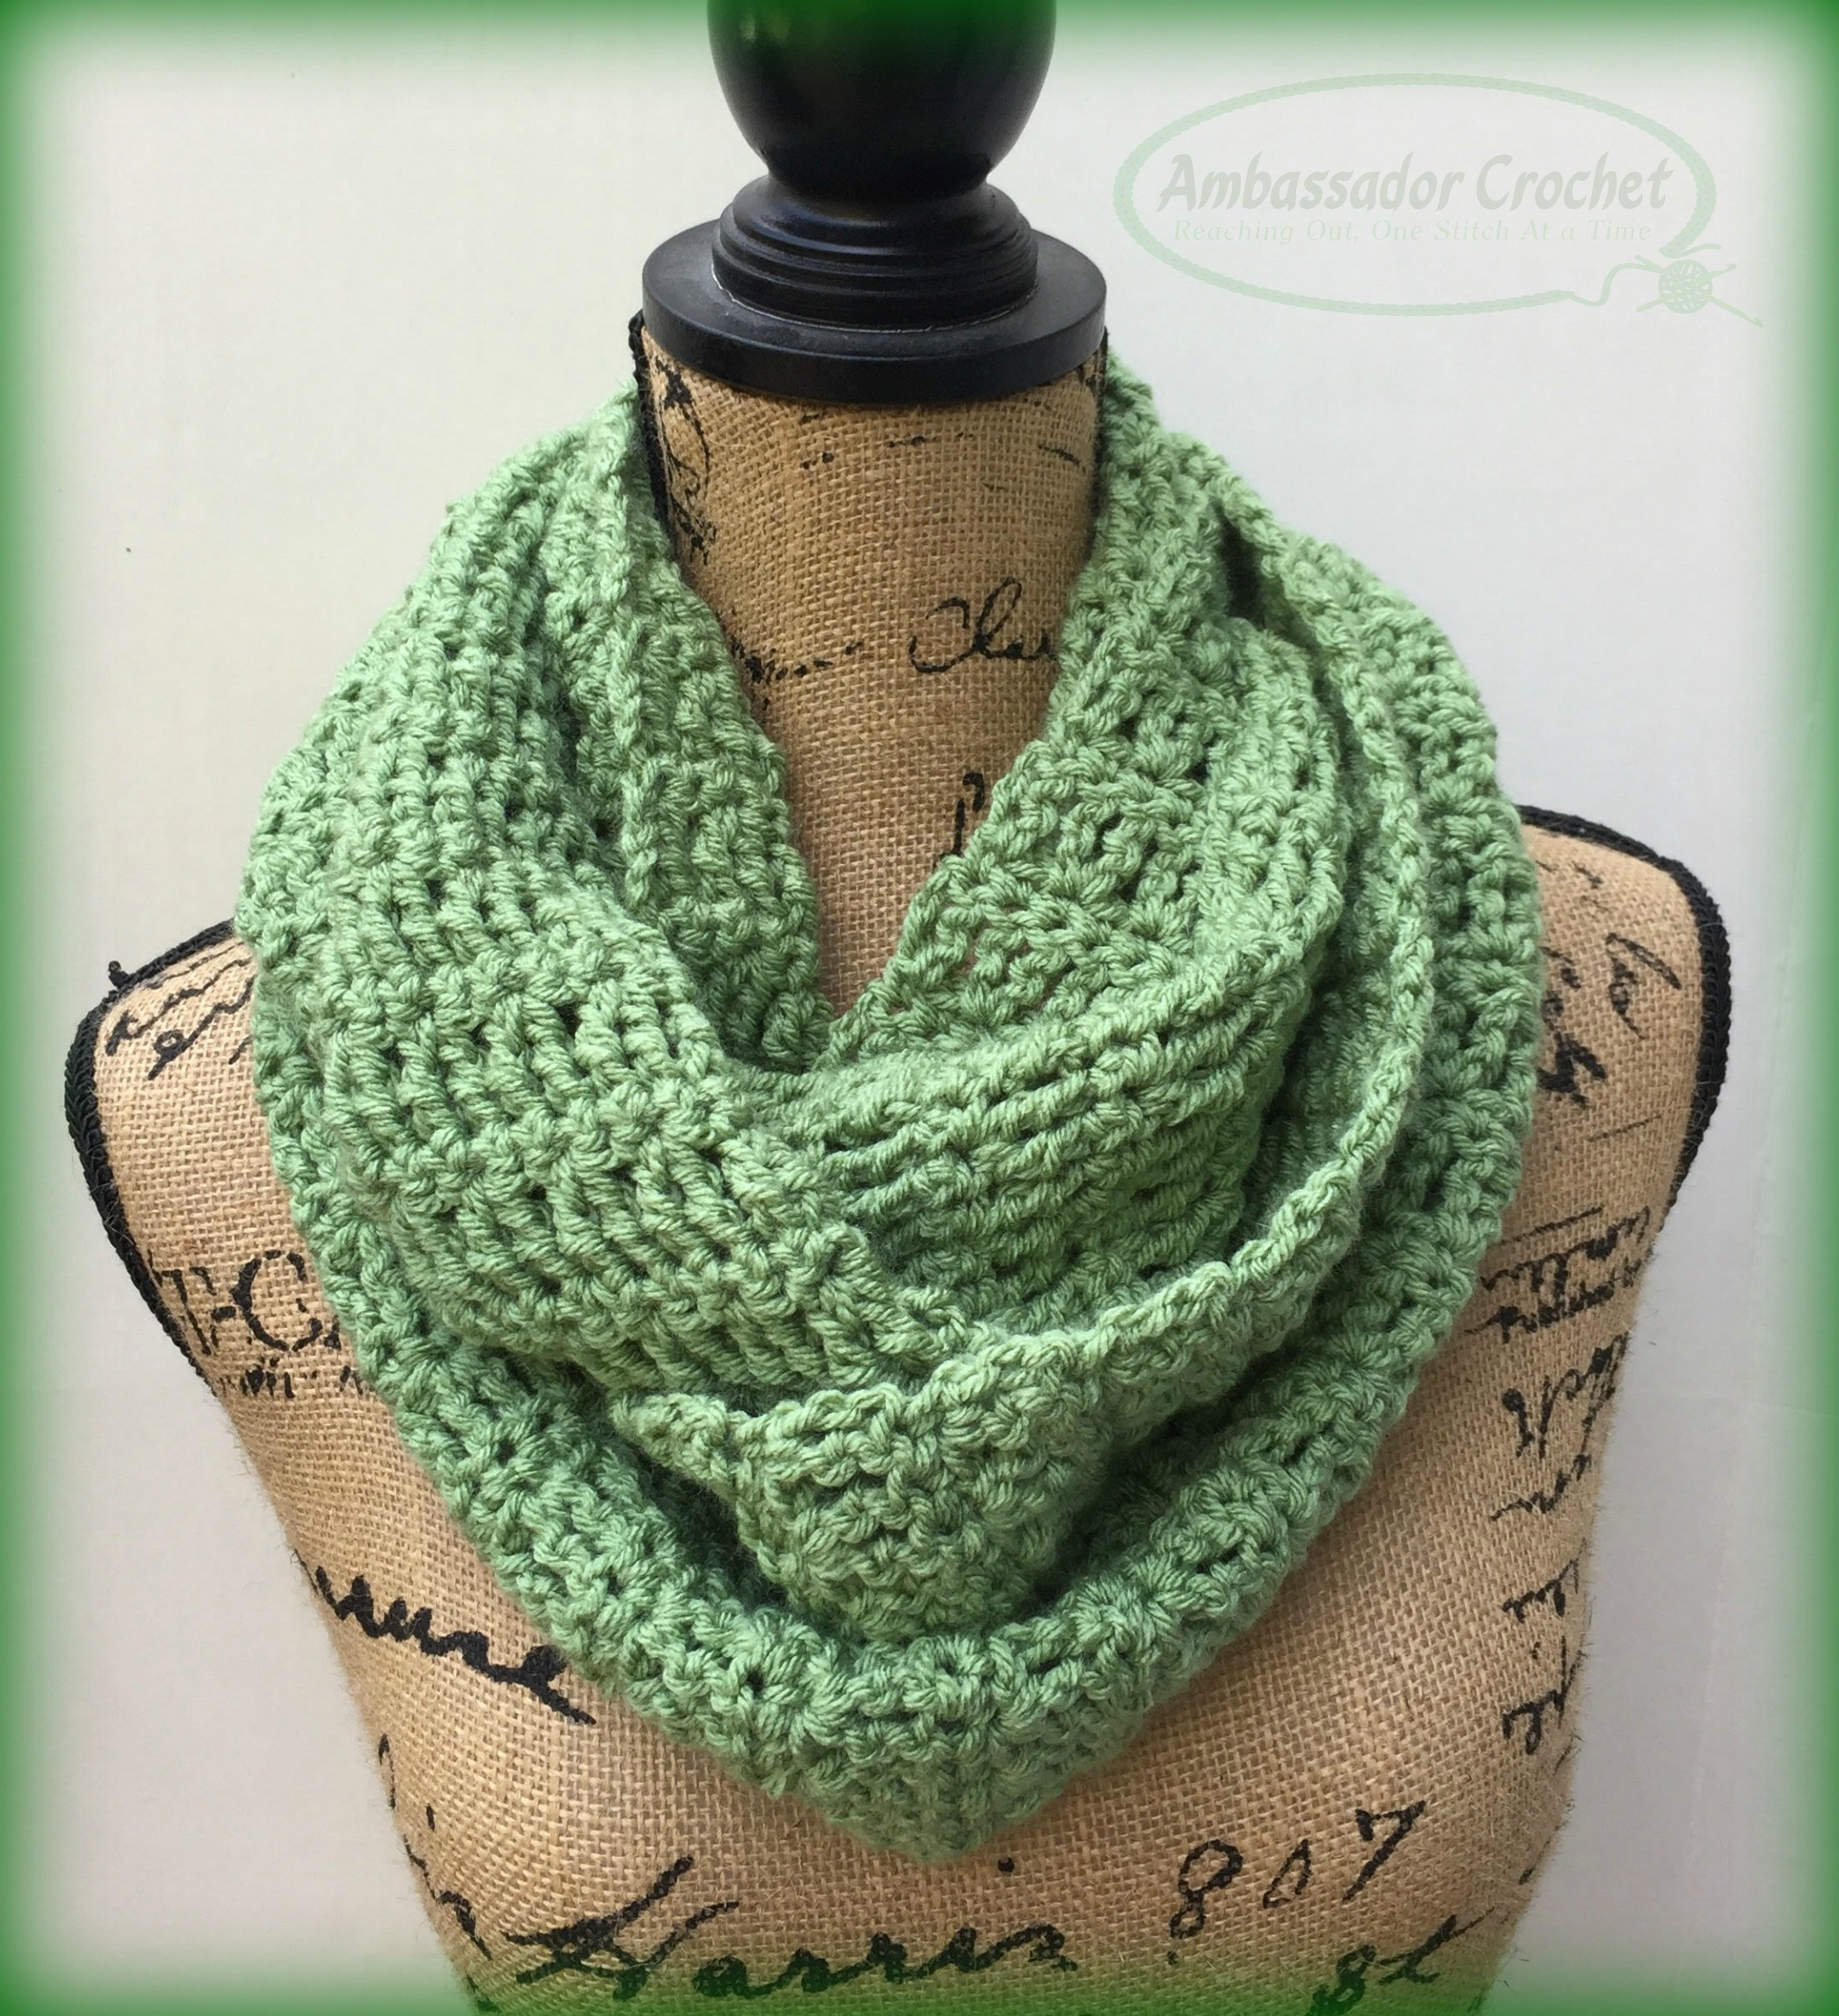 ambassador crochet reaching out one stitch at a time